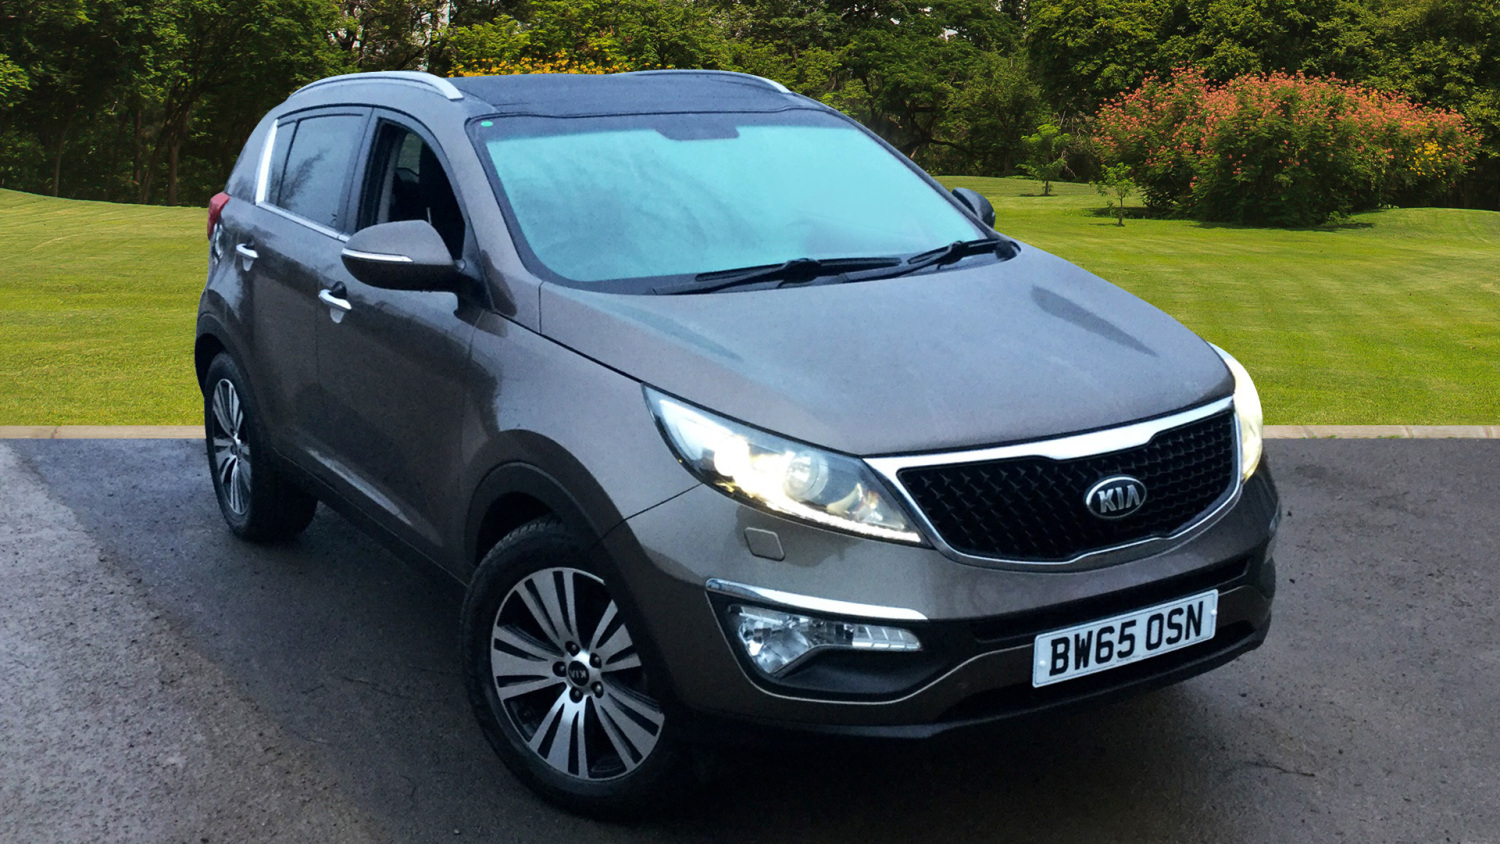 used kia sportage 1 7 crdi isg 3 5dr sat nav diesel estate for sale bristol street motors. Black Bedroom Furniture Sets. Home Design Ideas